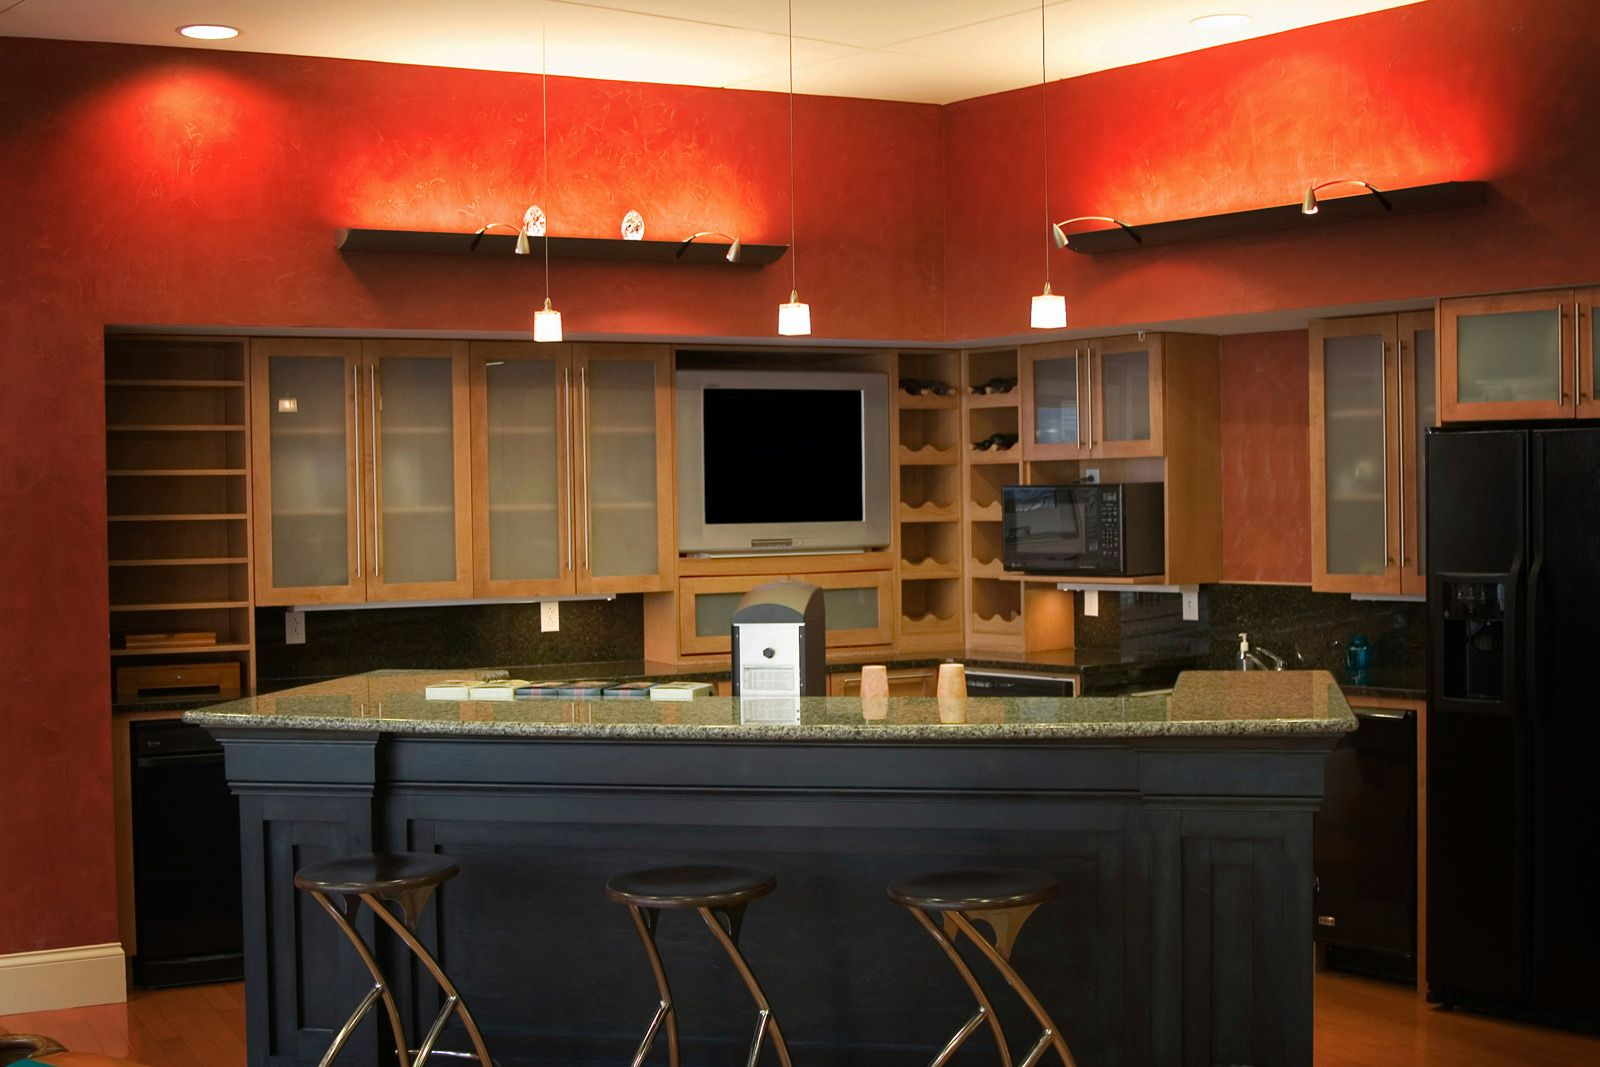 Interior Creative Painted Kitchen Cabinet Color Schemes Romantic Kitchen Ideas With Black Teak Wooden Kitchen Island And Red Wall Paint Color Ideas